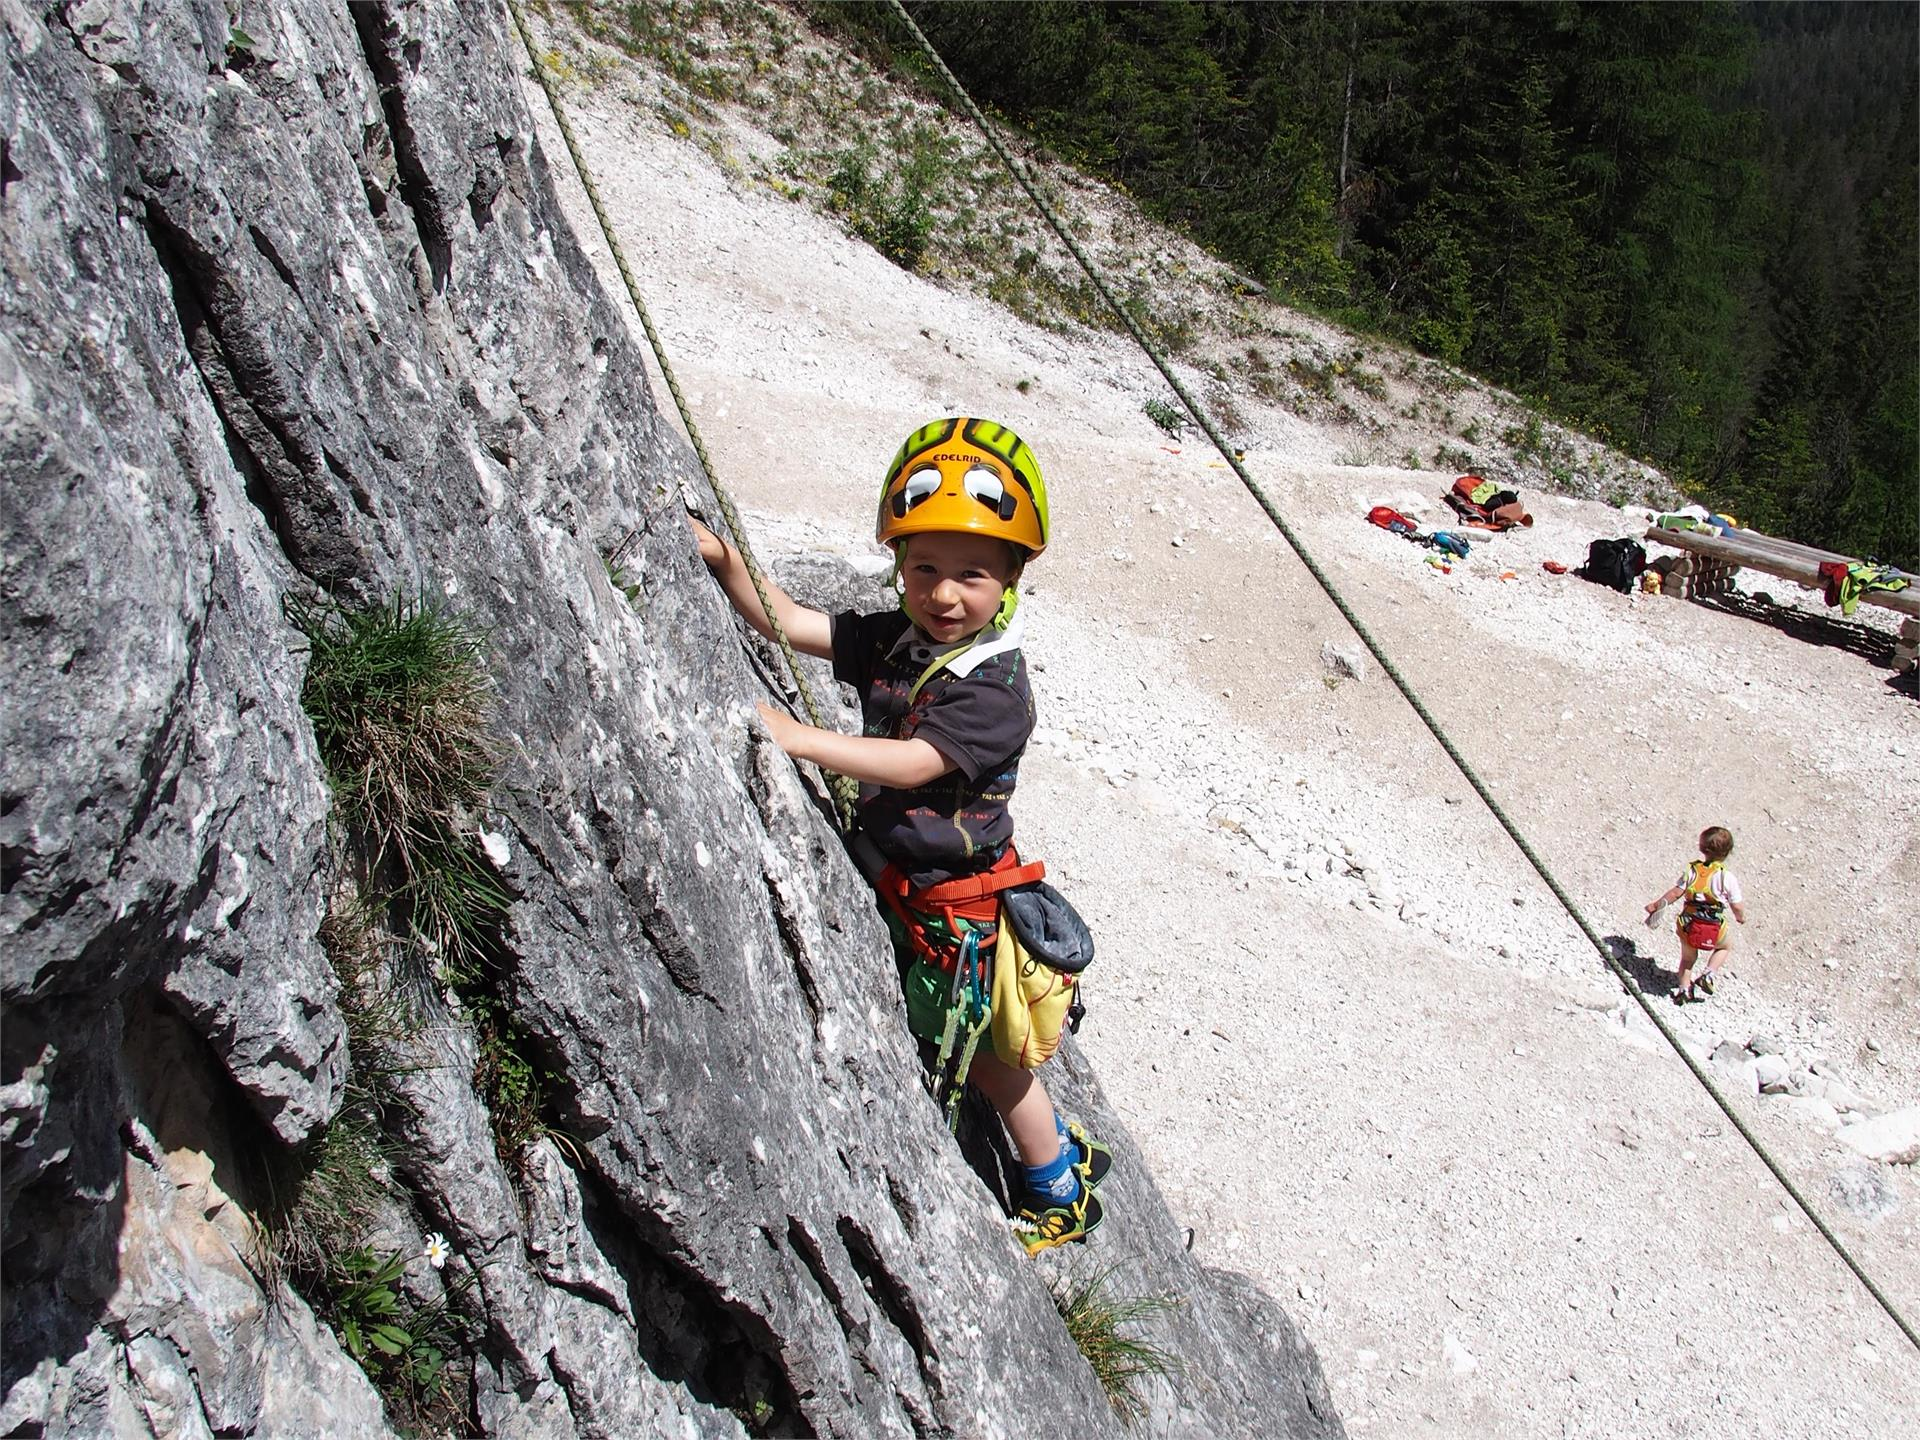 Climbing lessons for children on Passo delle Erbe